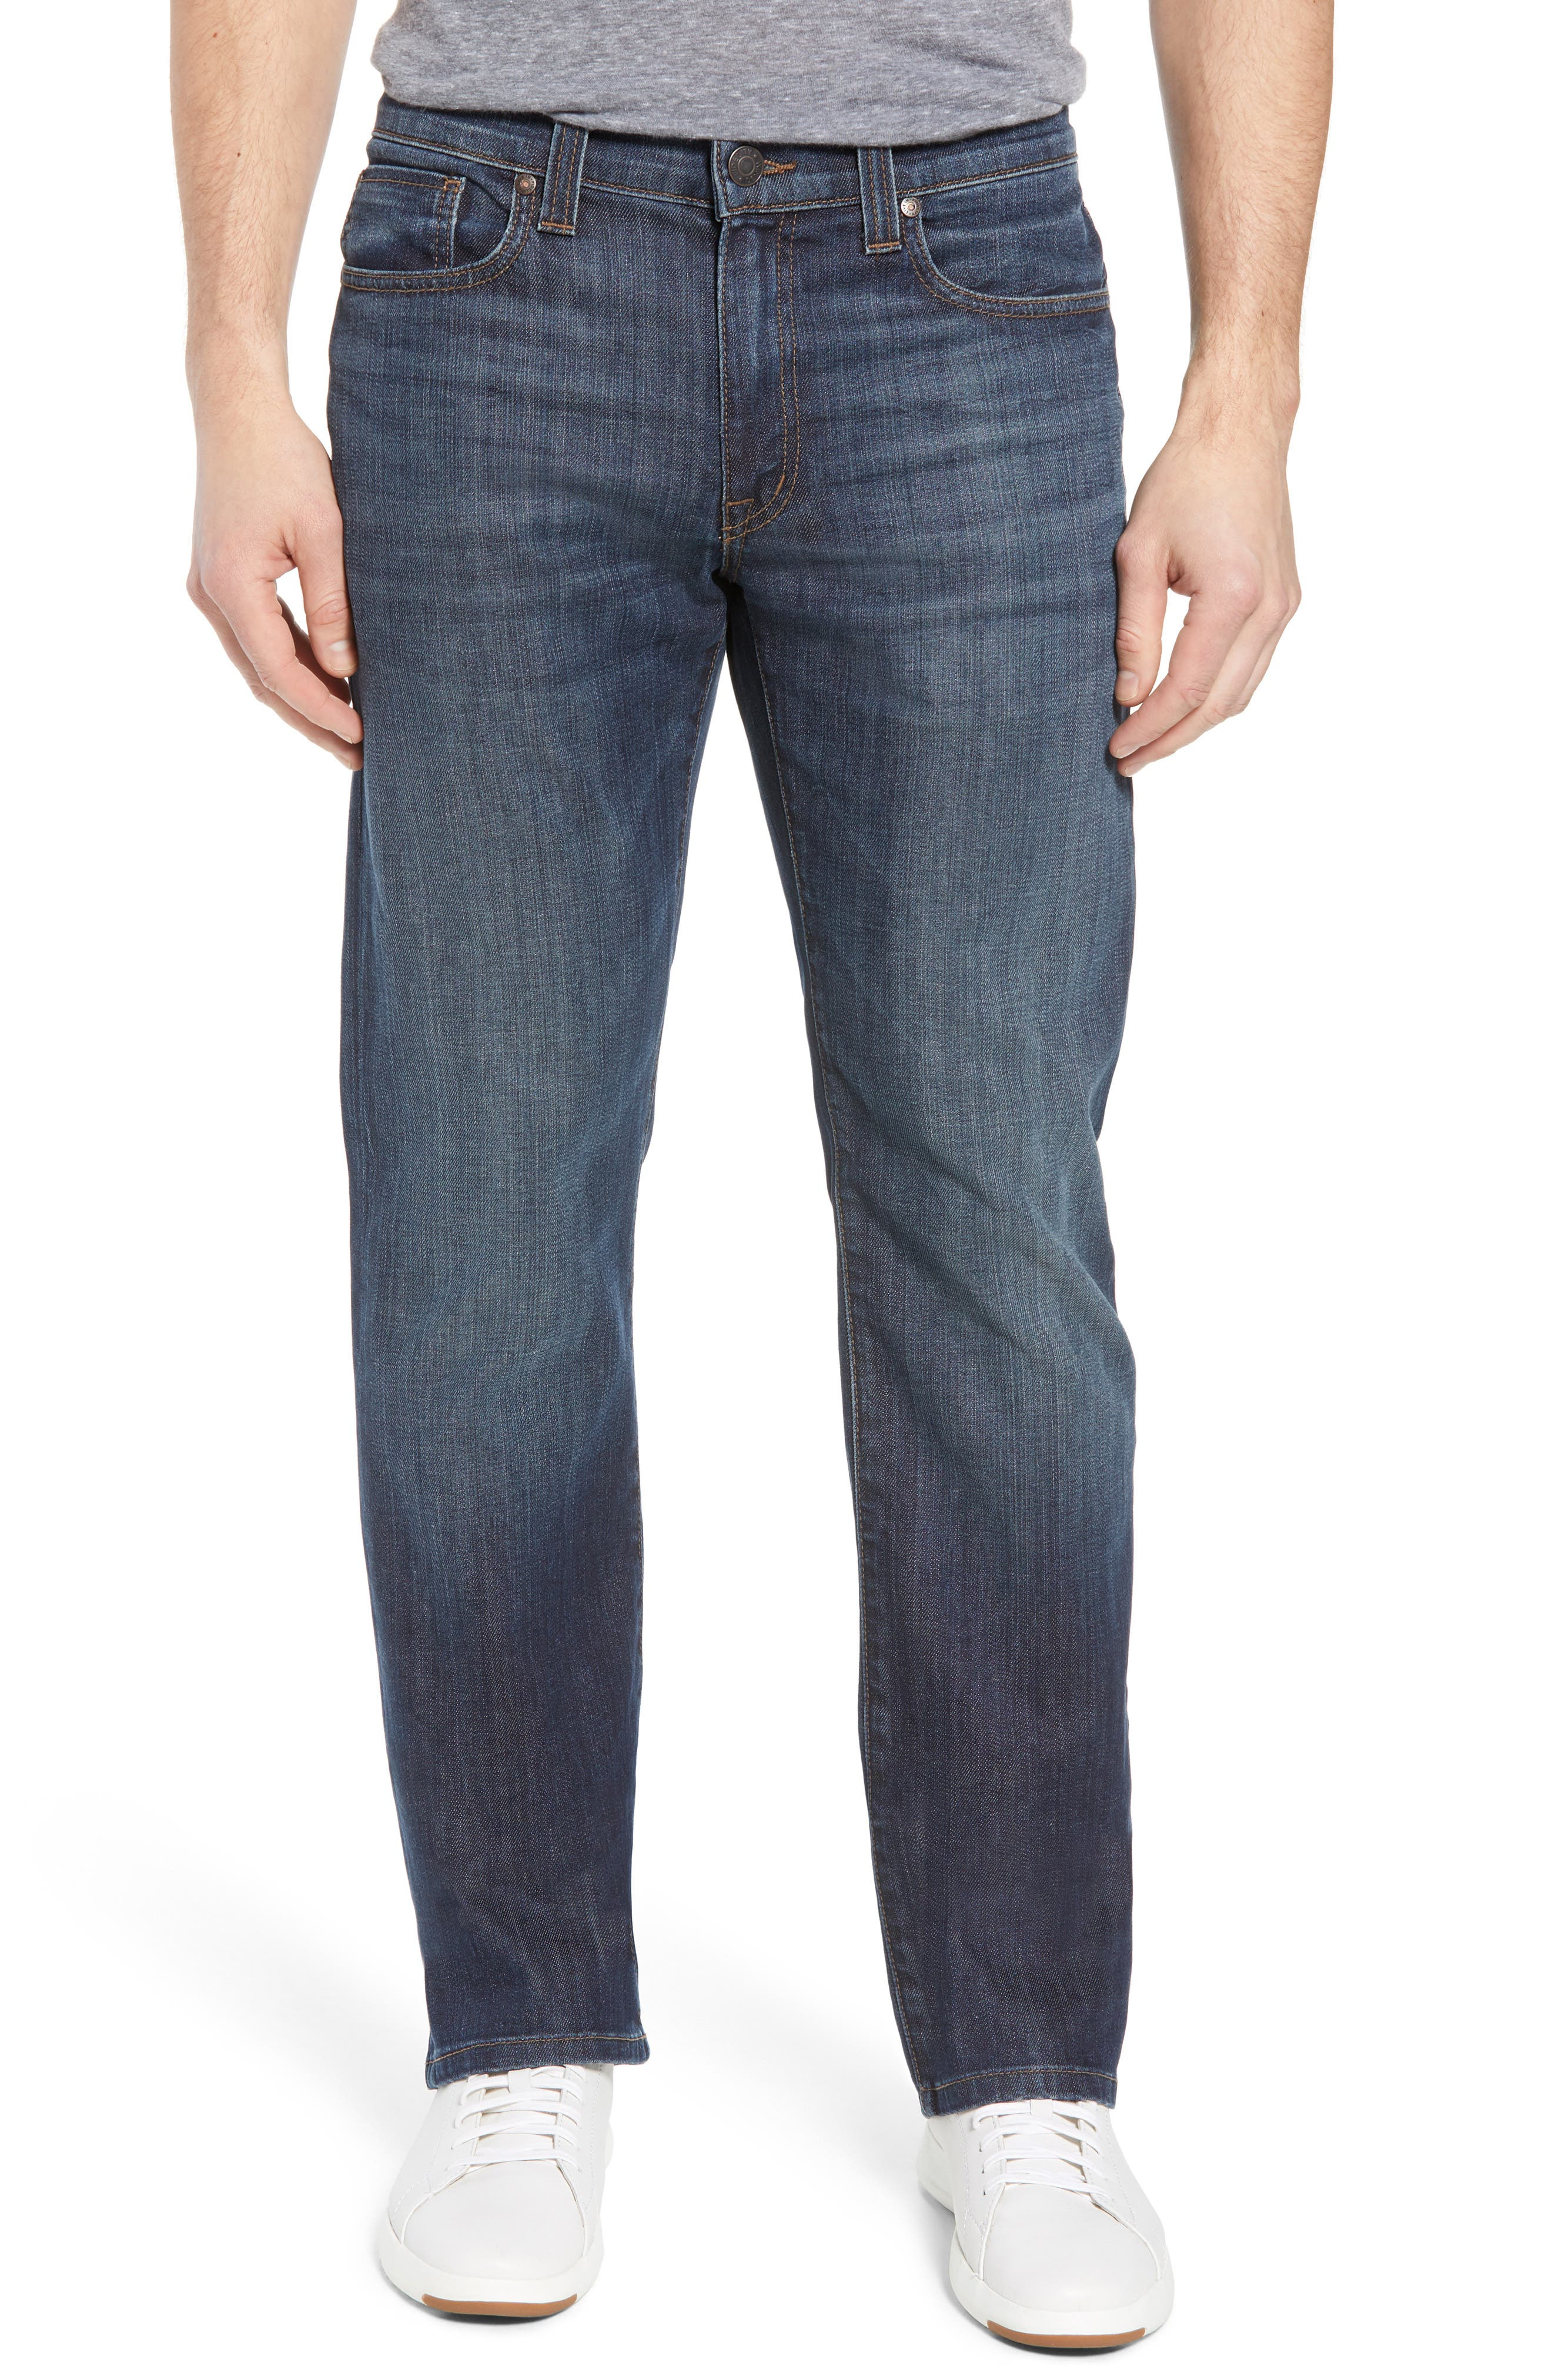 50-11 Relaxed Fit Jeans,                         Main,                         color, Winwood Vintage